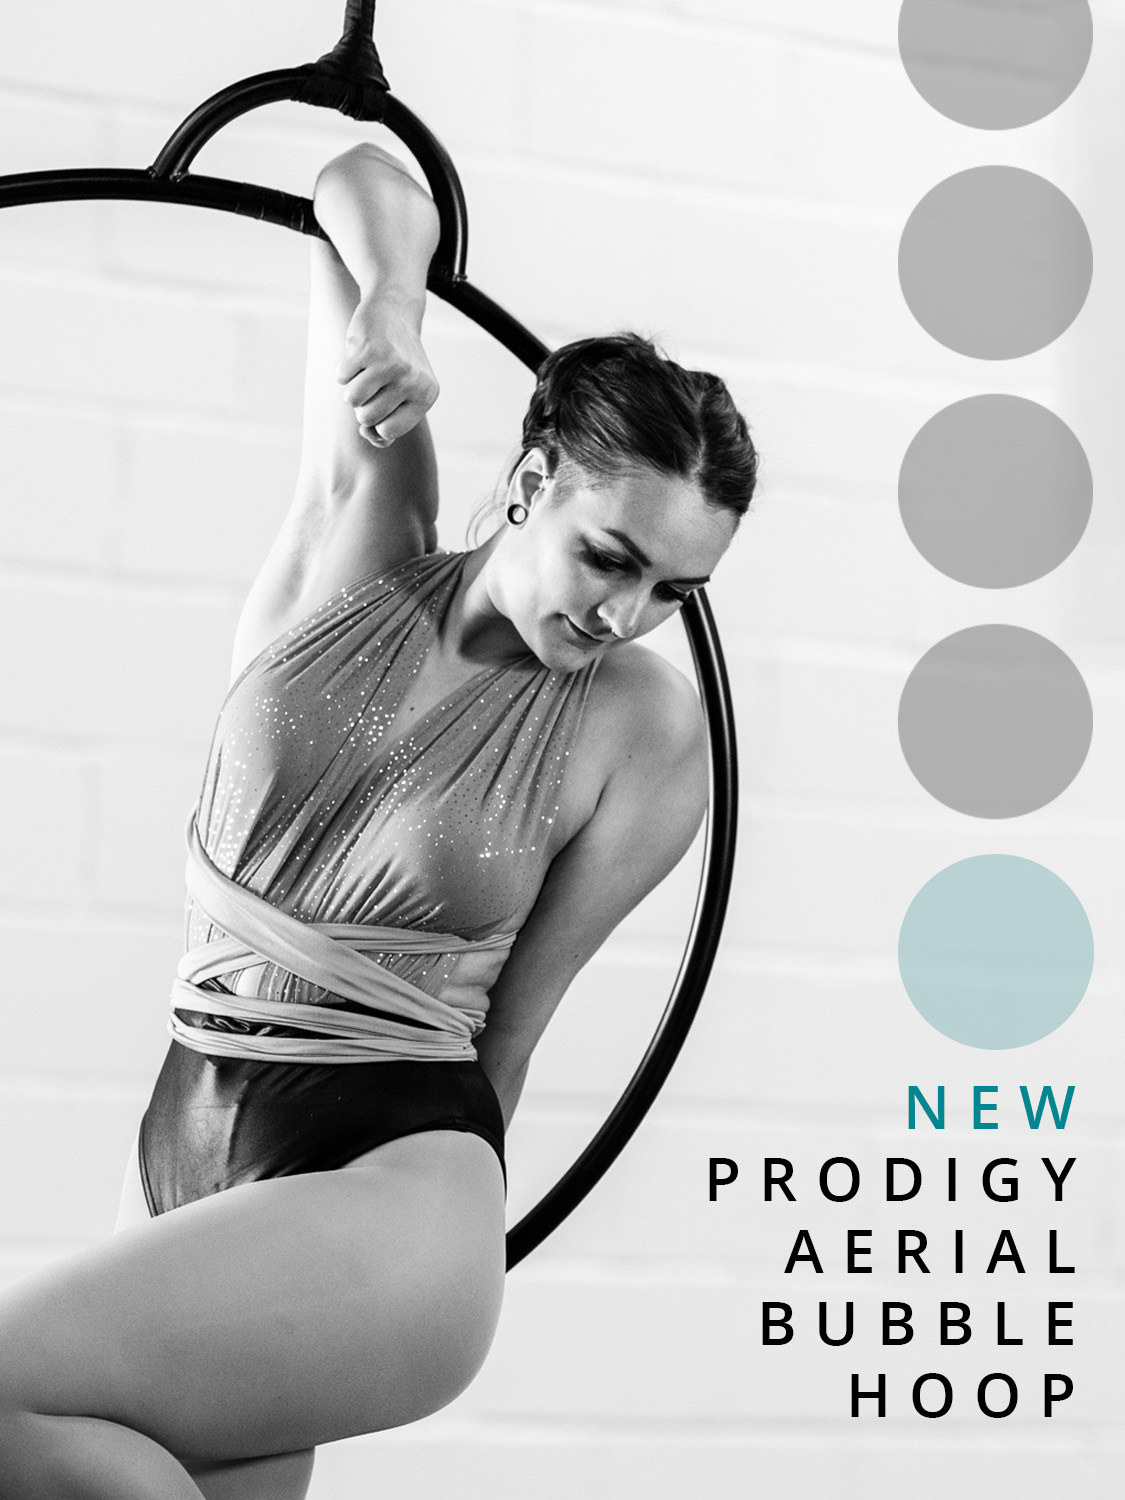 The new Prodigy Aerial Bubble Hoop